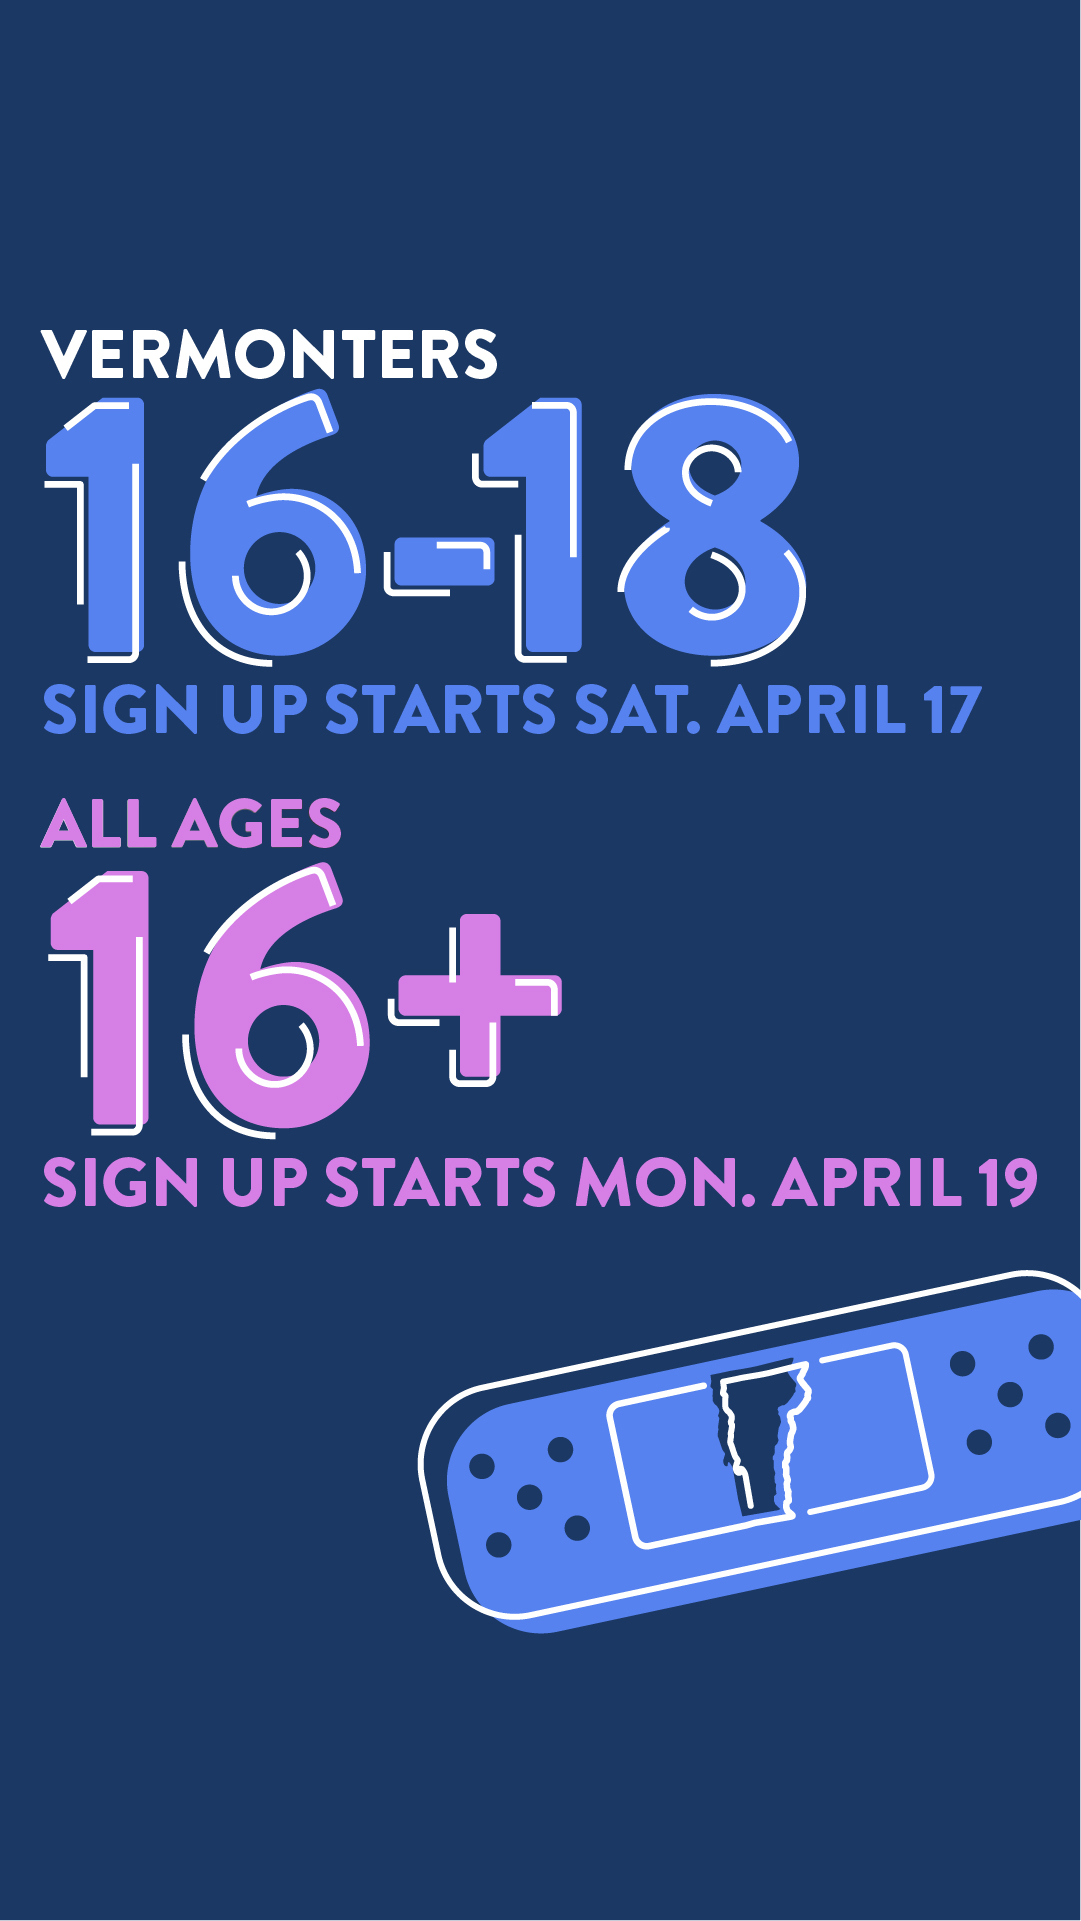 Vermonters 16-18 Sign up starts Sat April 17 All Ages 16+ Sign up starts Mon April 19